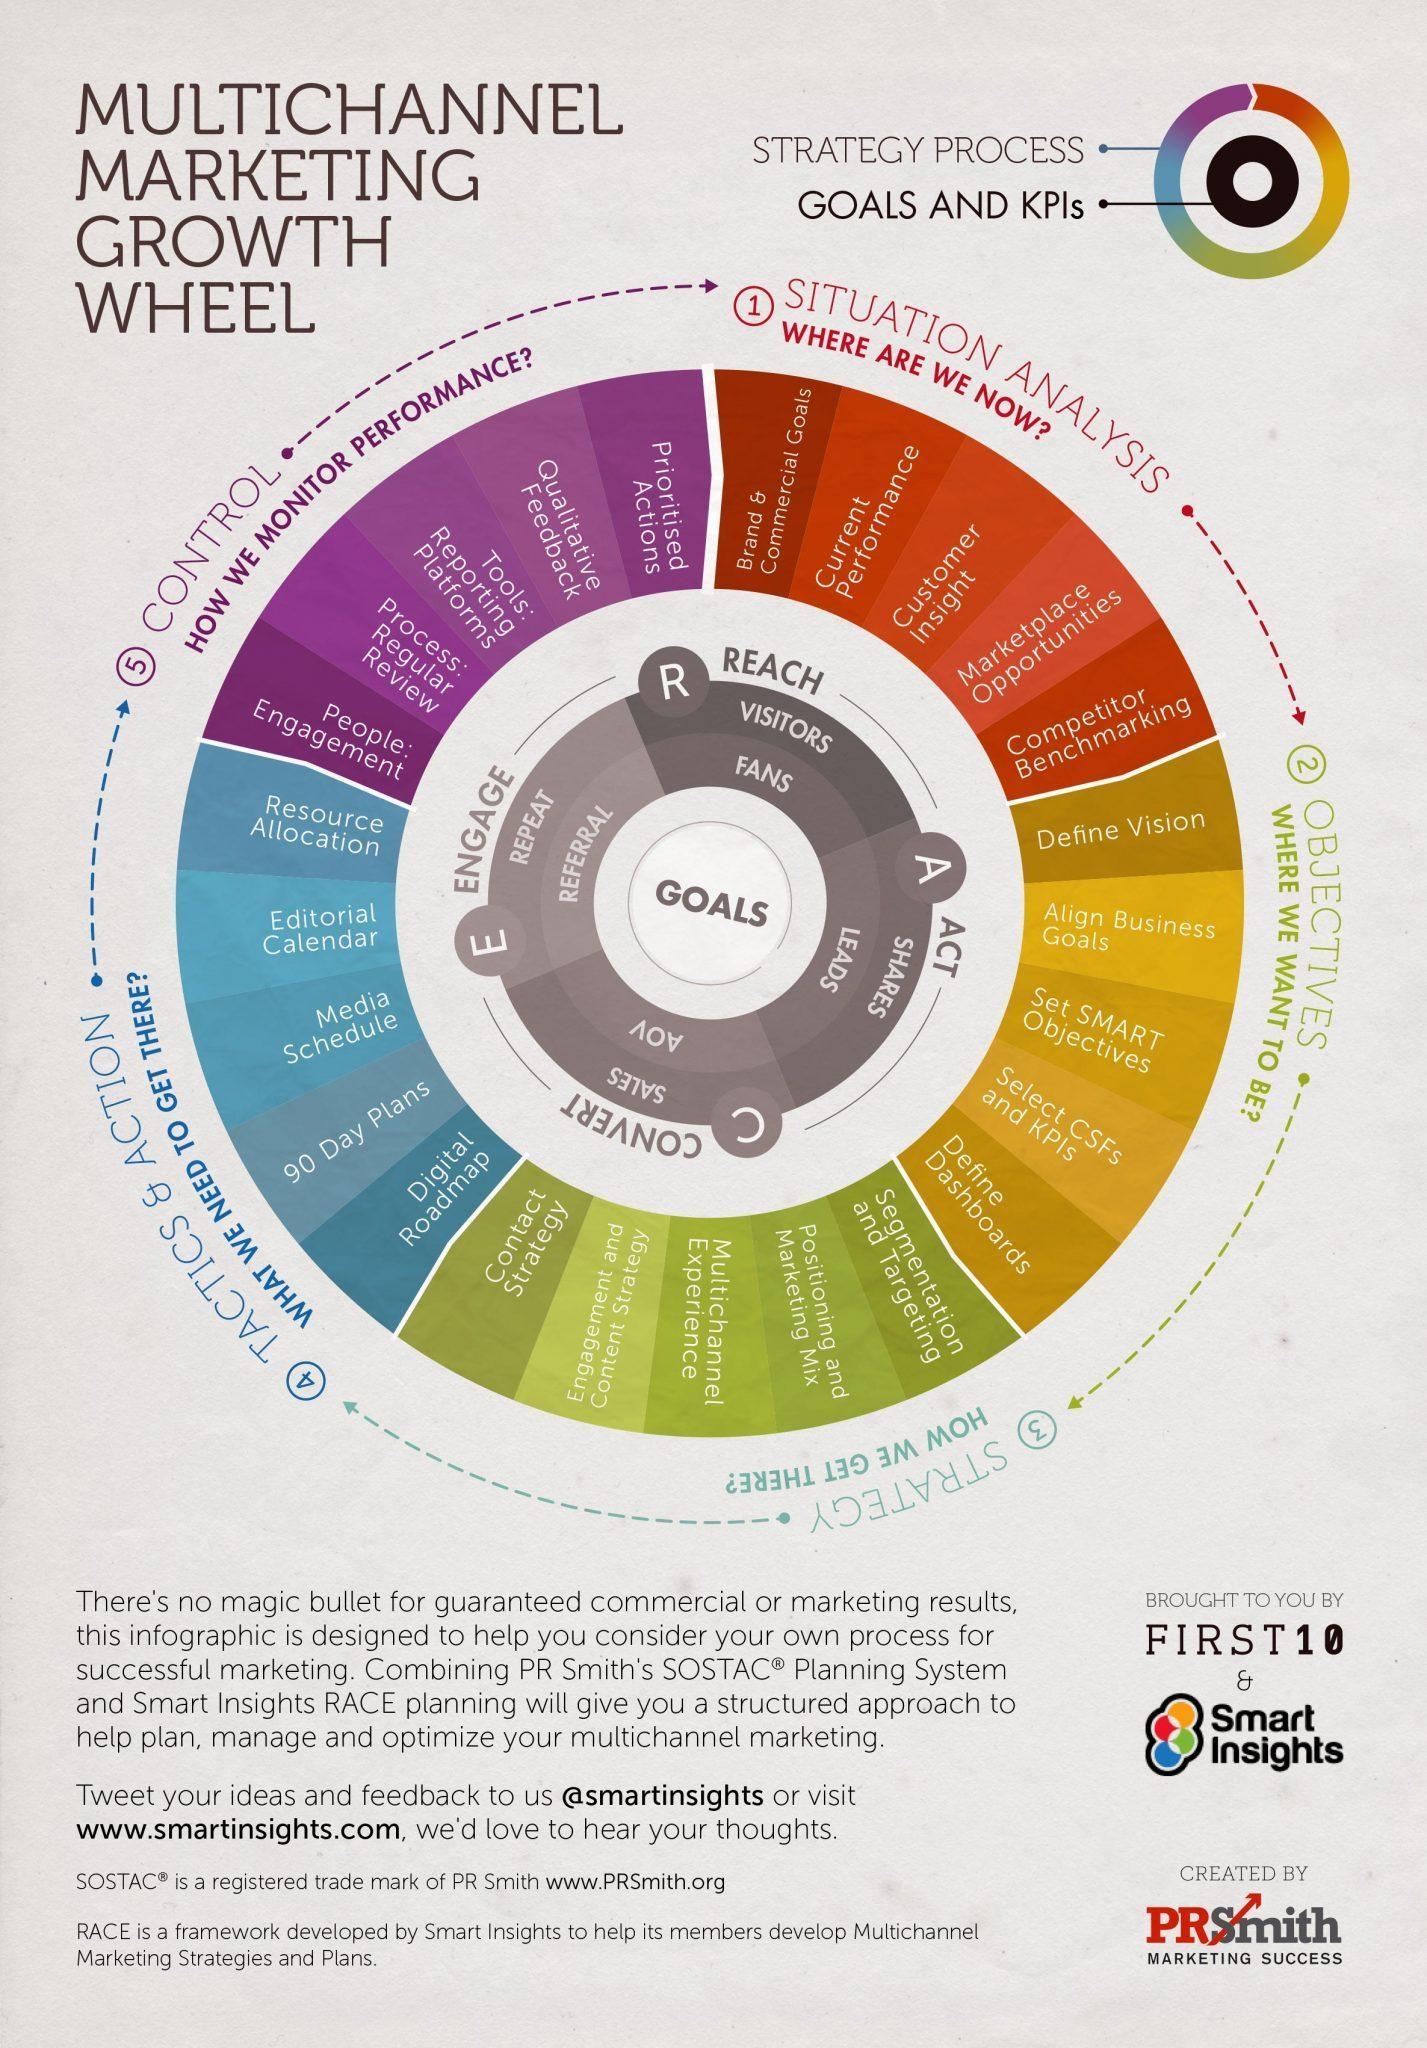 SOSTAC RACE marketing growth wheel smart insights prsmith